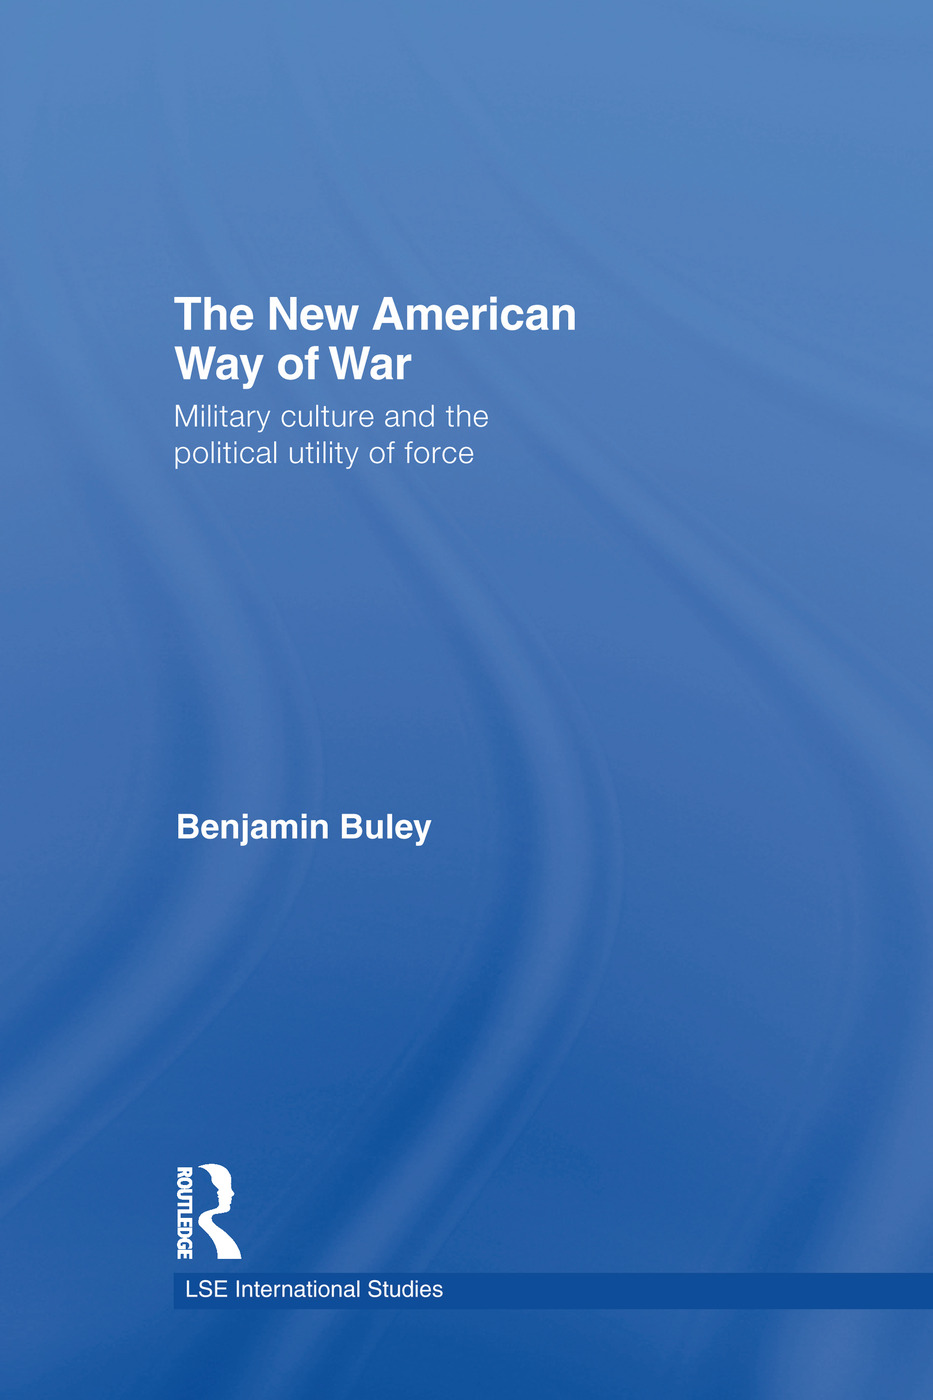 The science of strategy: War as a political instrument in the nuclear age